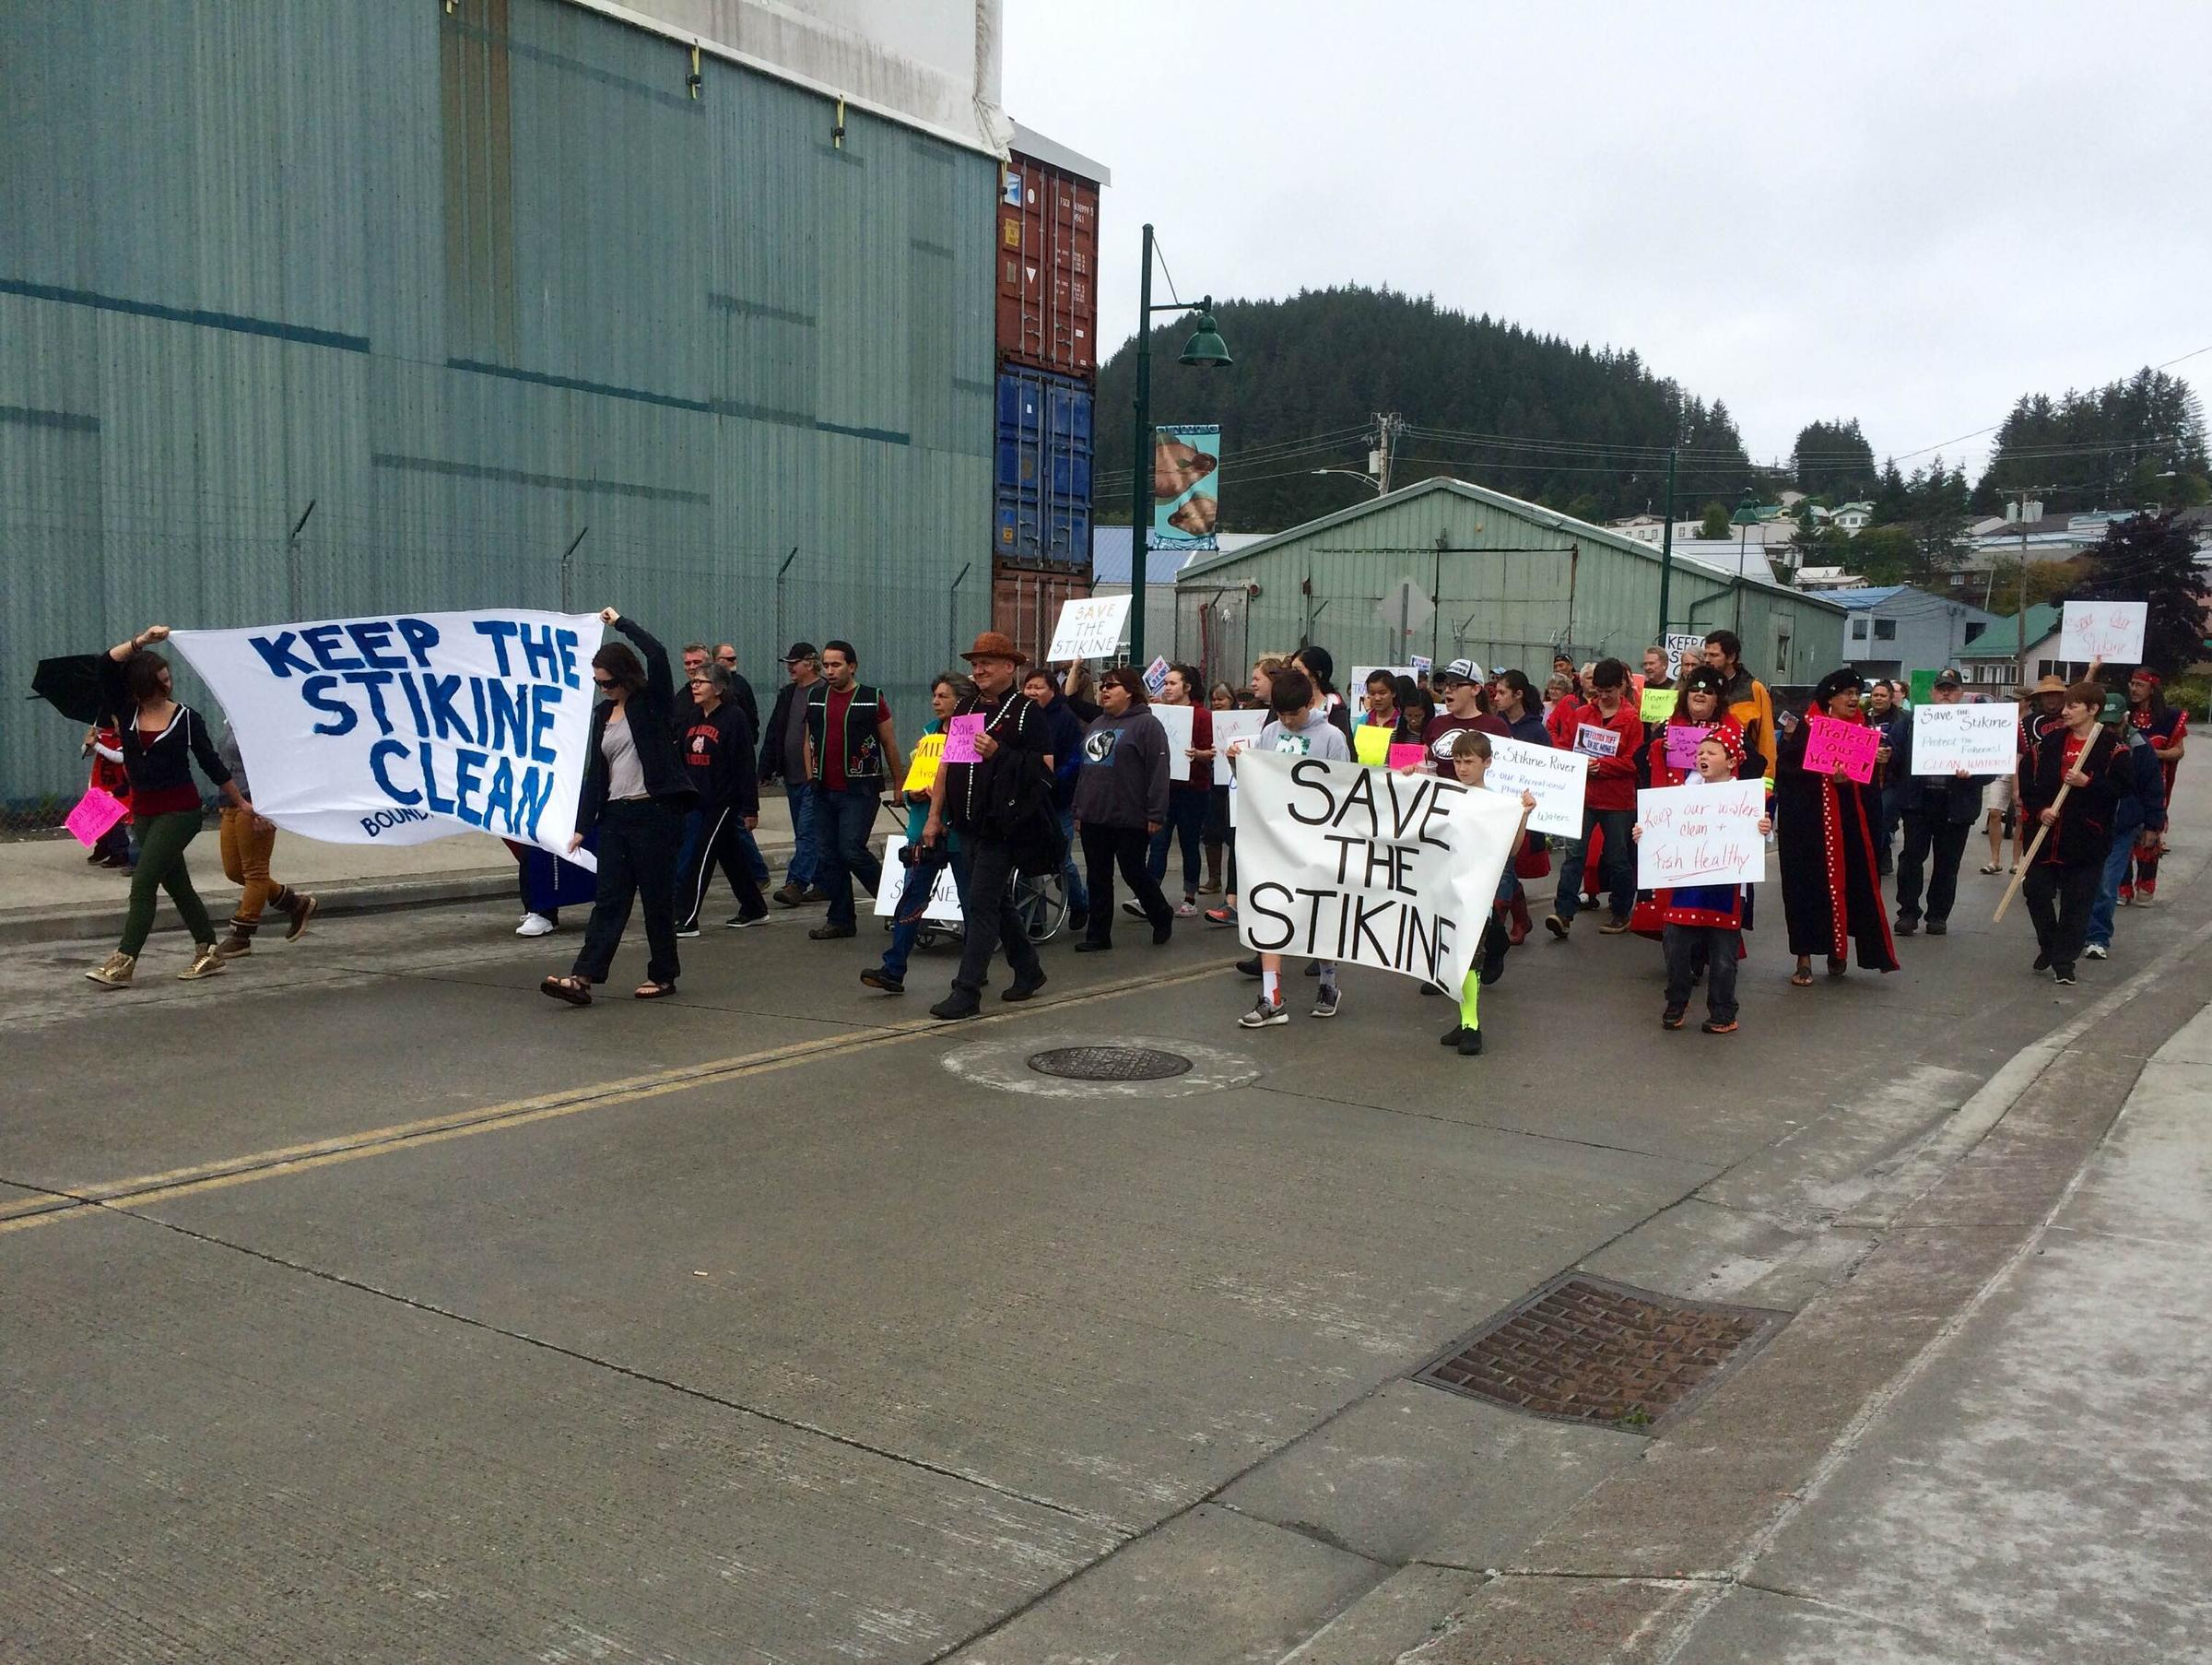 KNBA News - Wrangell residents protest British Columbia